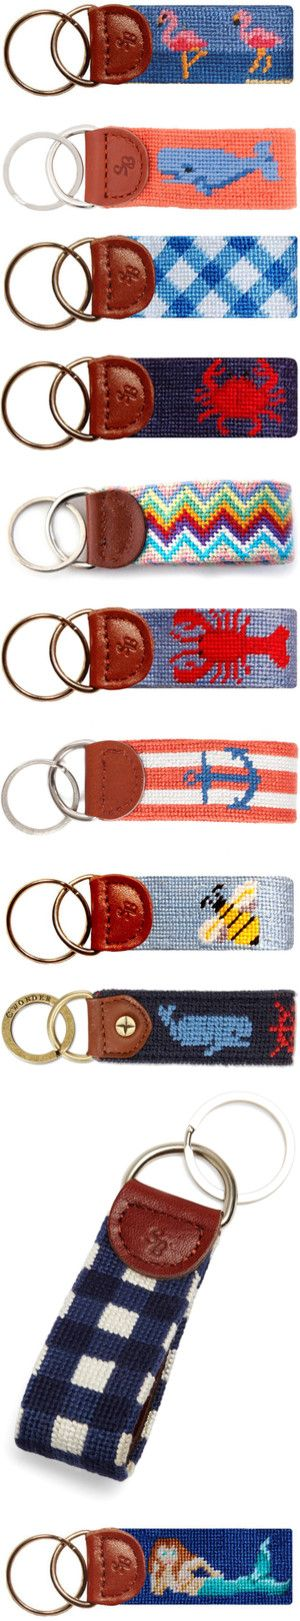 """""""smathers and branson keychains"""" by okieprep ❤ liked on Polyvore"""